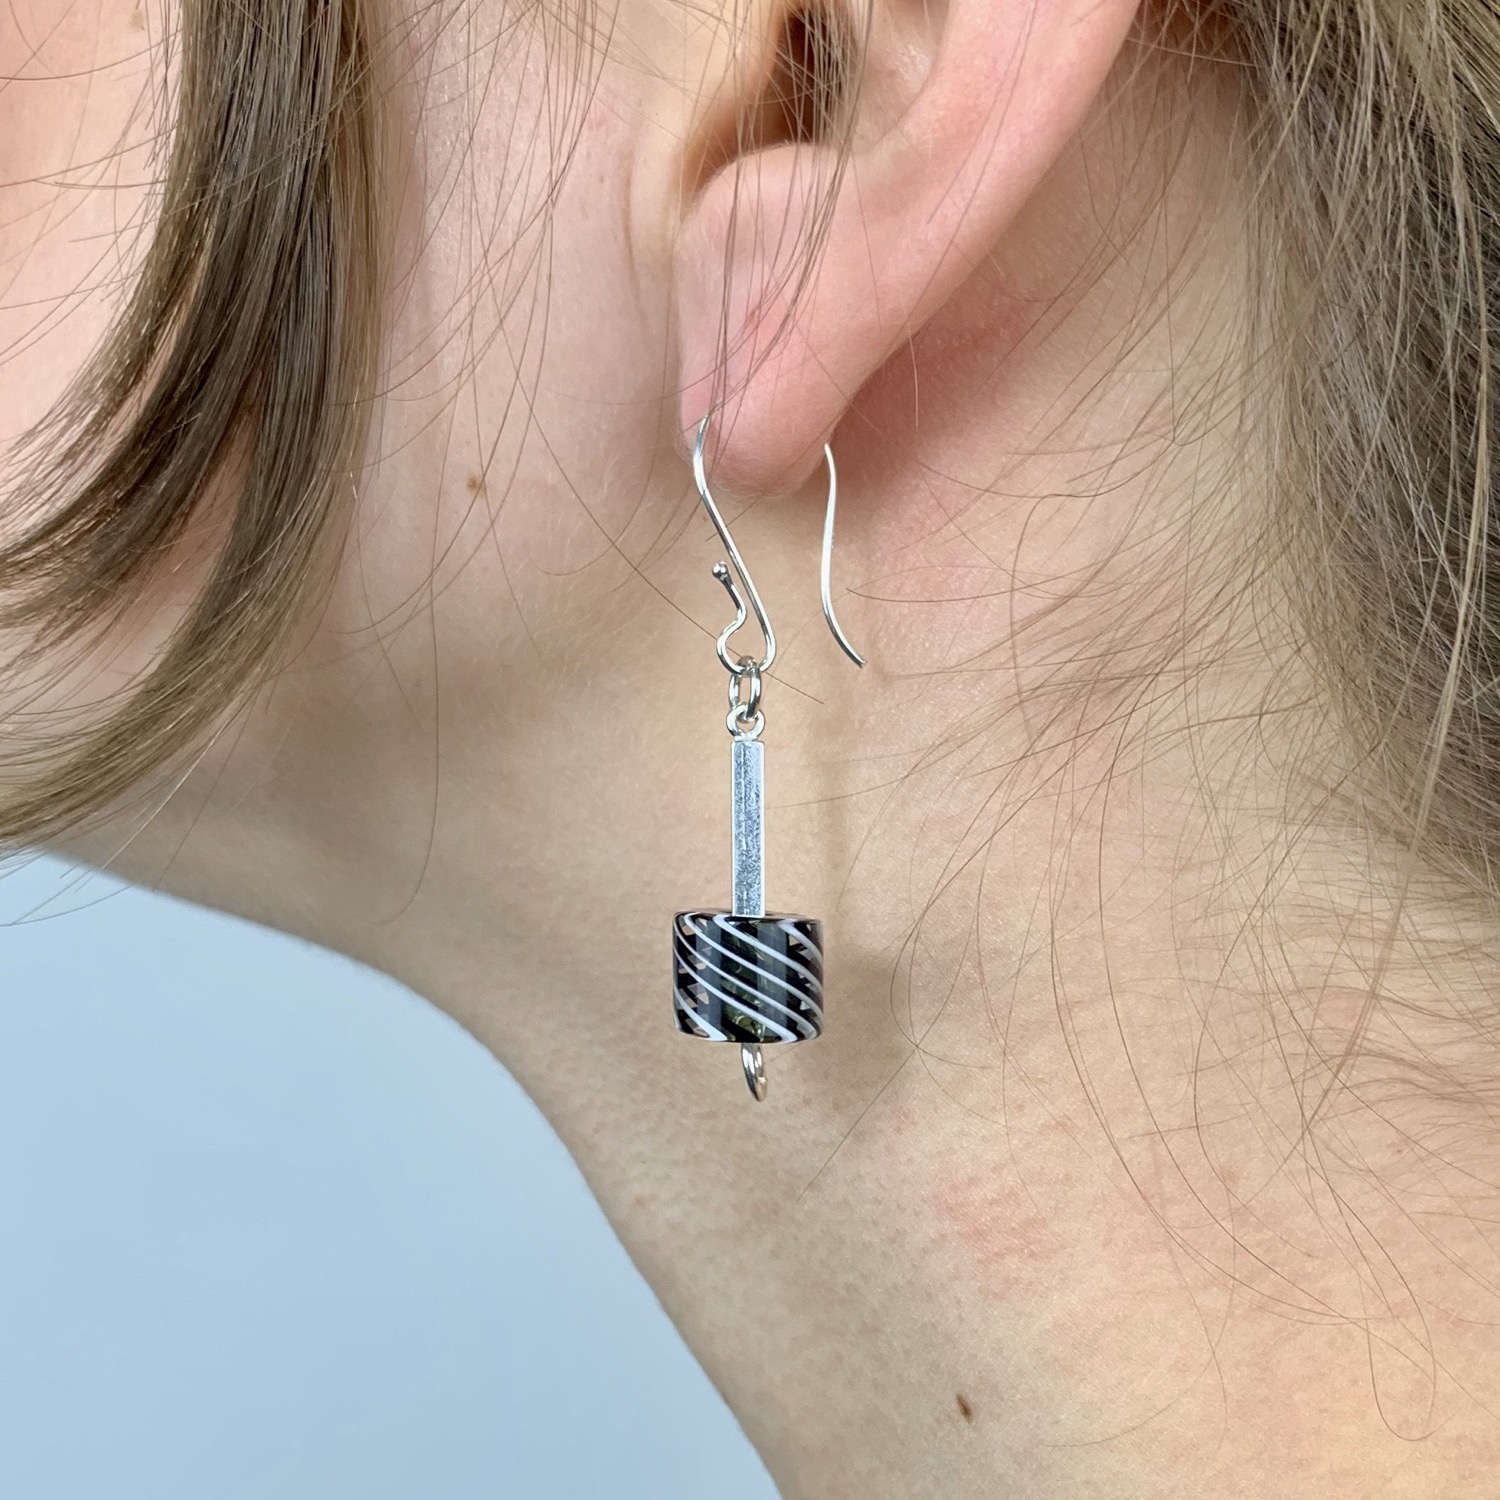 Cafe Earrings (Black with B&W Stripes)